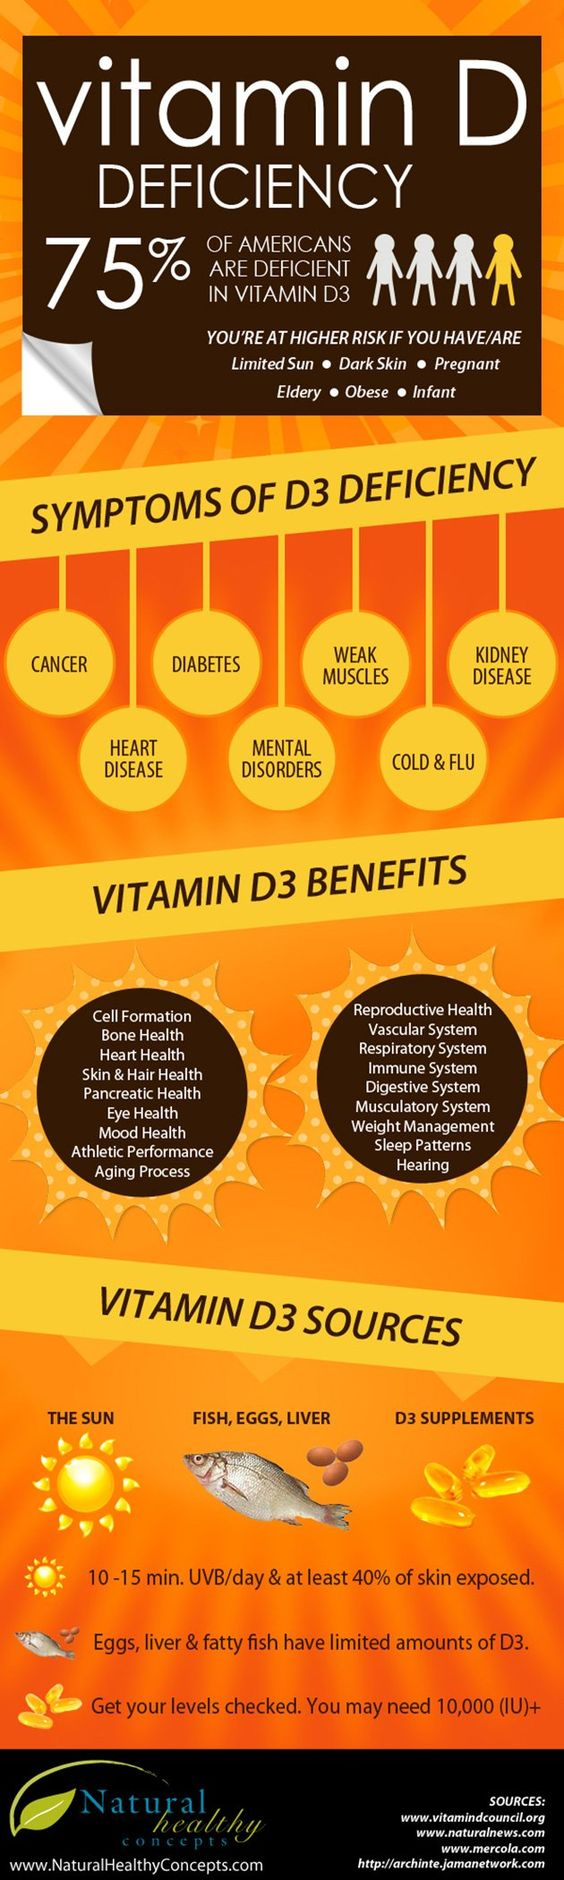 Vitamin D Deficiency Infographic health, fitness, nutrition, healthy lifestyle.   If you like it, repin it :-)  #FastSimpleFitness    Get Free Fitness and Weight Loss News and Tips by Liking Us on: www.facebook.com/FastSimpleFitness: